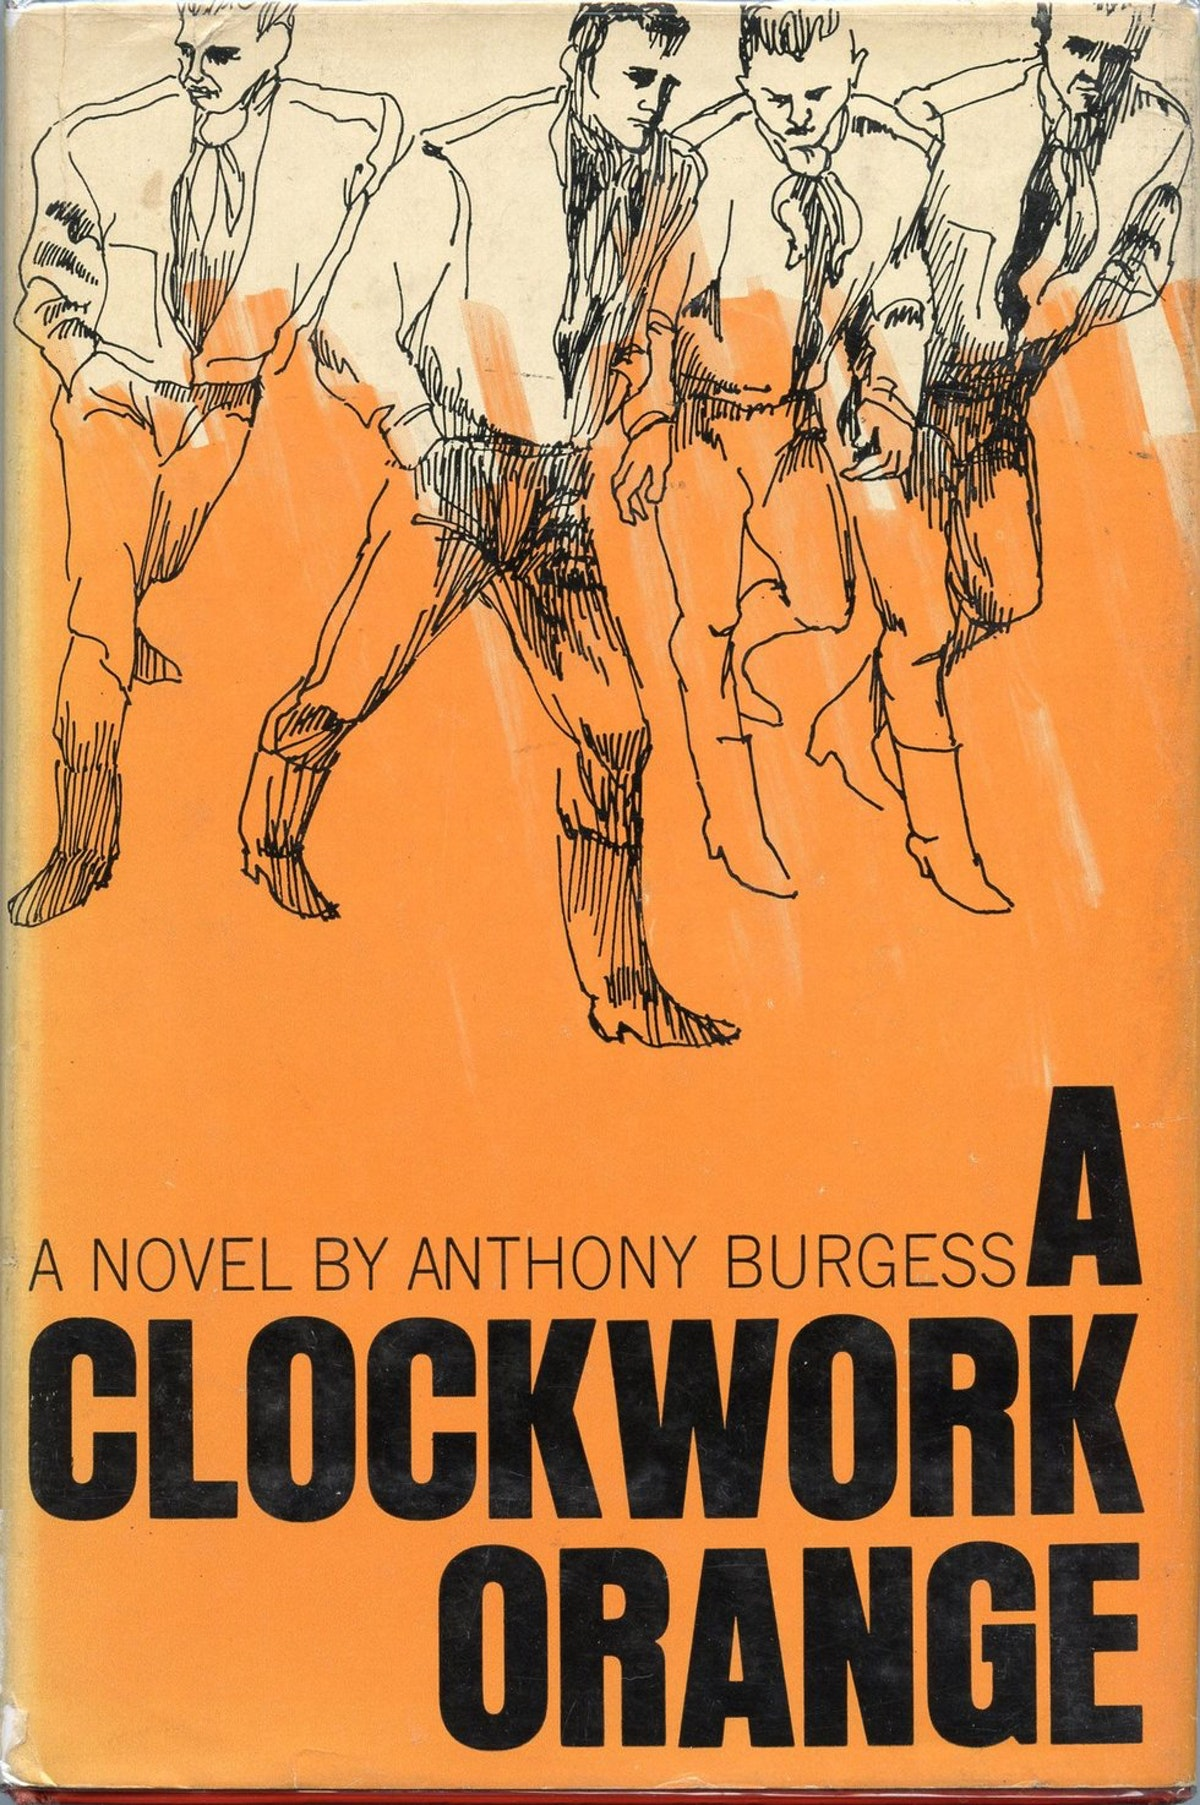 an analysis of the dystopia in anthony burgess a clockwork orange It is because of this that the term utopia, usually meaning a place of utmost   brave new world and anthony burgess a clockwork orange, later adapted by.